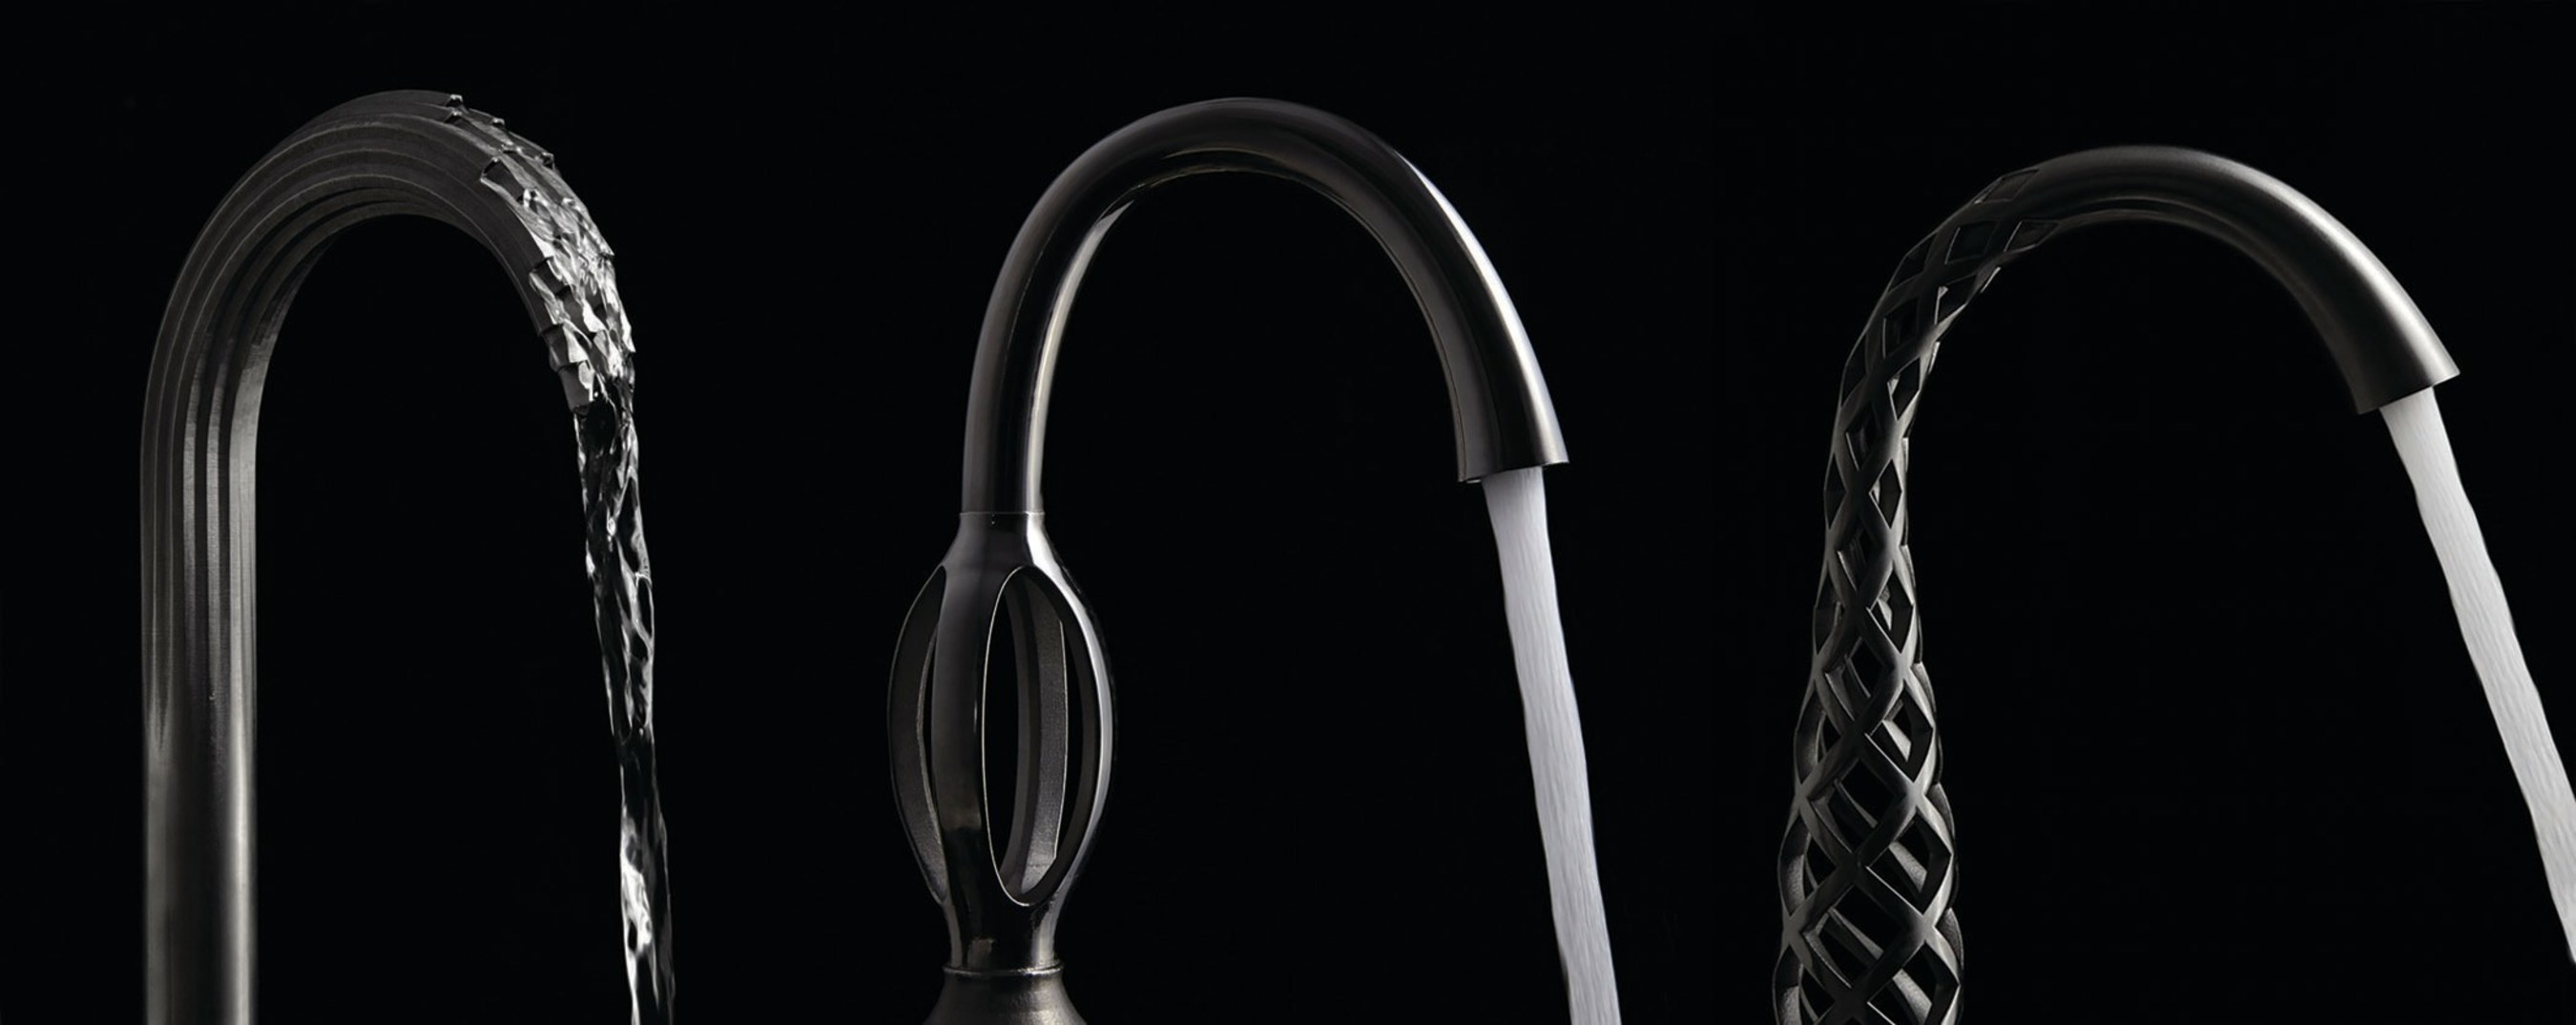 The Shadowbrook, Trope and Vibrato faucets -- the first commercially-available residential faucets created with 3D printing -- from DXV have been named a 2016 R&D 100 Award finalist in the Process and Prototyping Category in recognition of their innovative designs and new application of additive manufacturing technology.